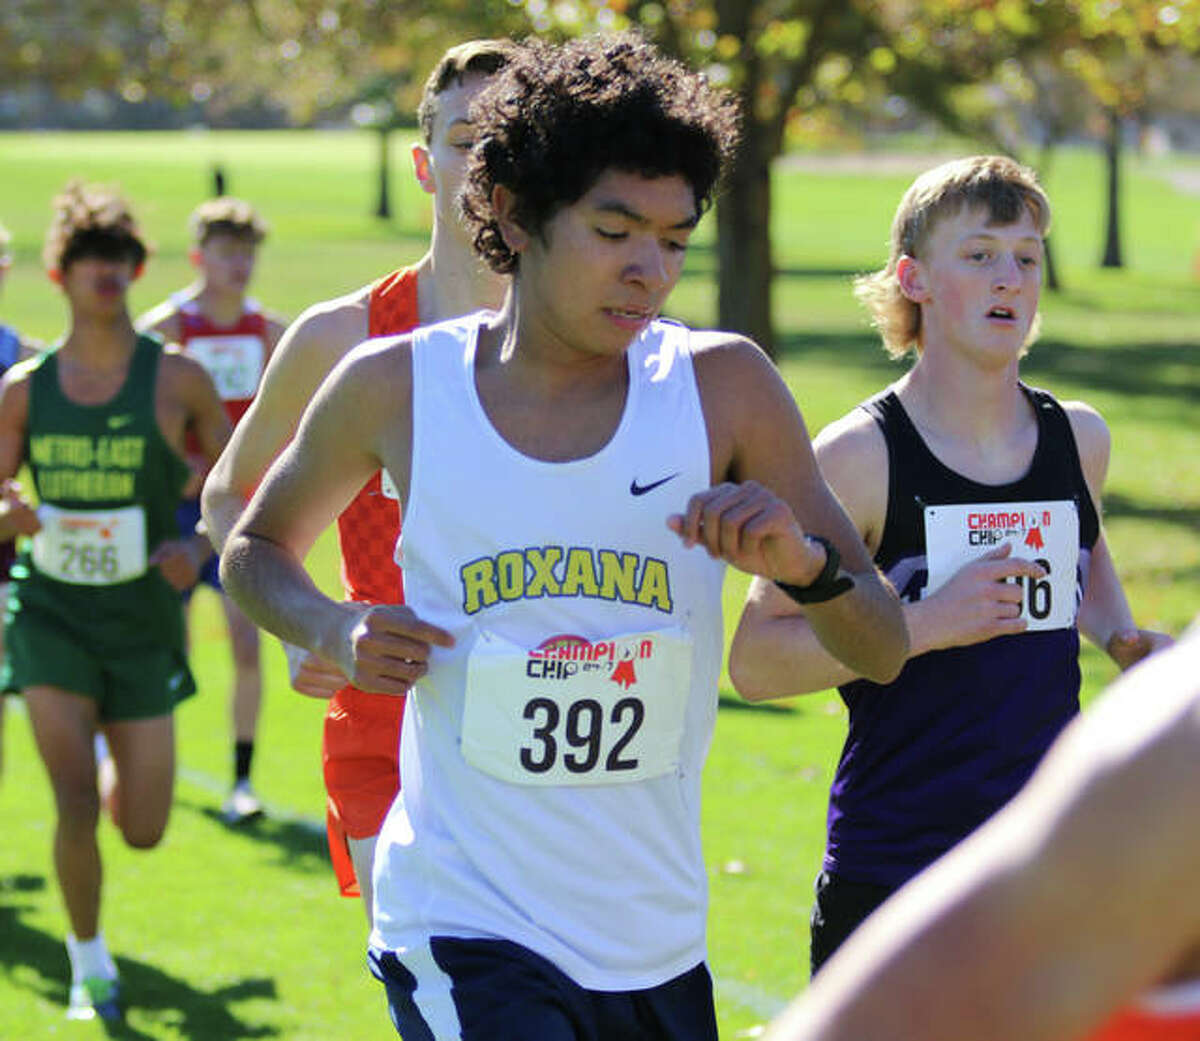 Roxana's Carlos Ruvalcaba checks his watch early in the race at the Decatur St. Teresa Class 1A Sectional on Saturday at Hickory Point golf course in Forsyth. Ruvalcaba placed seventh.